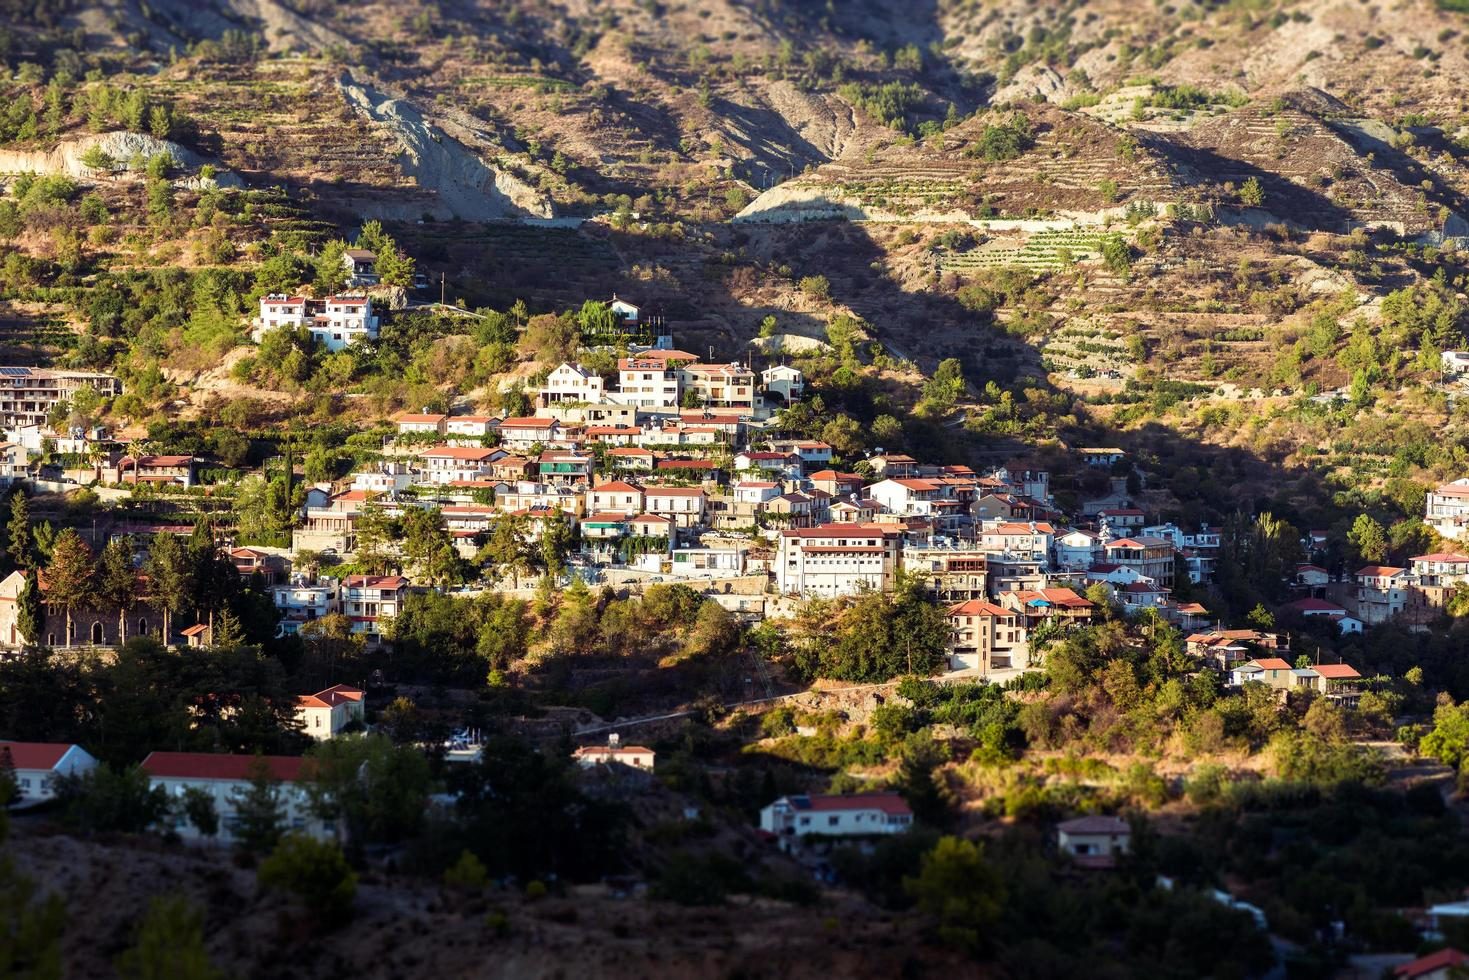 scène de village de montagne traditionnel photo